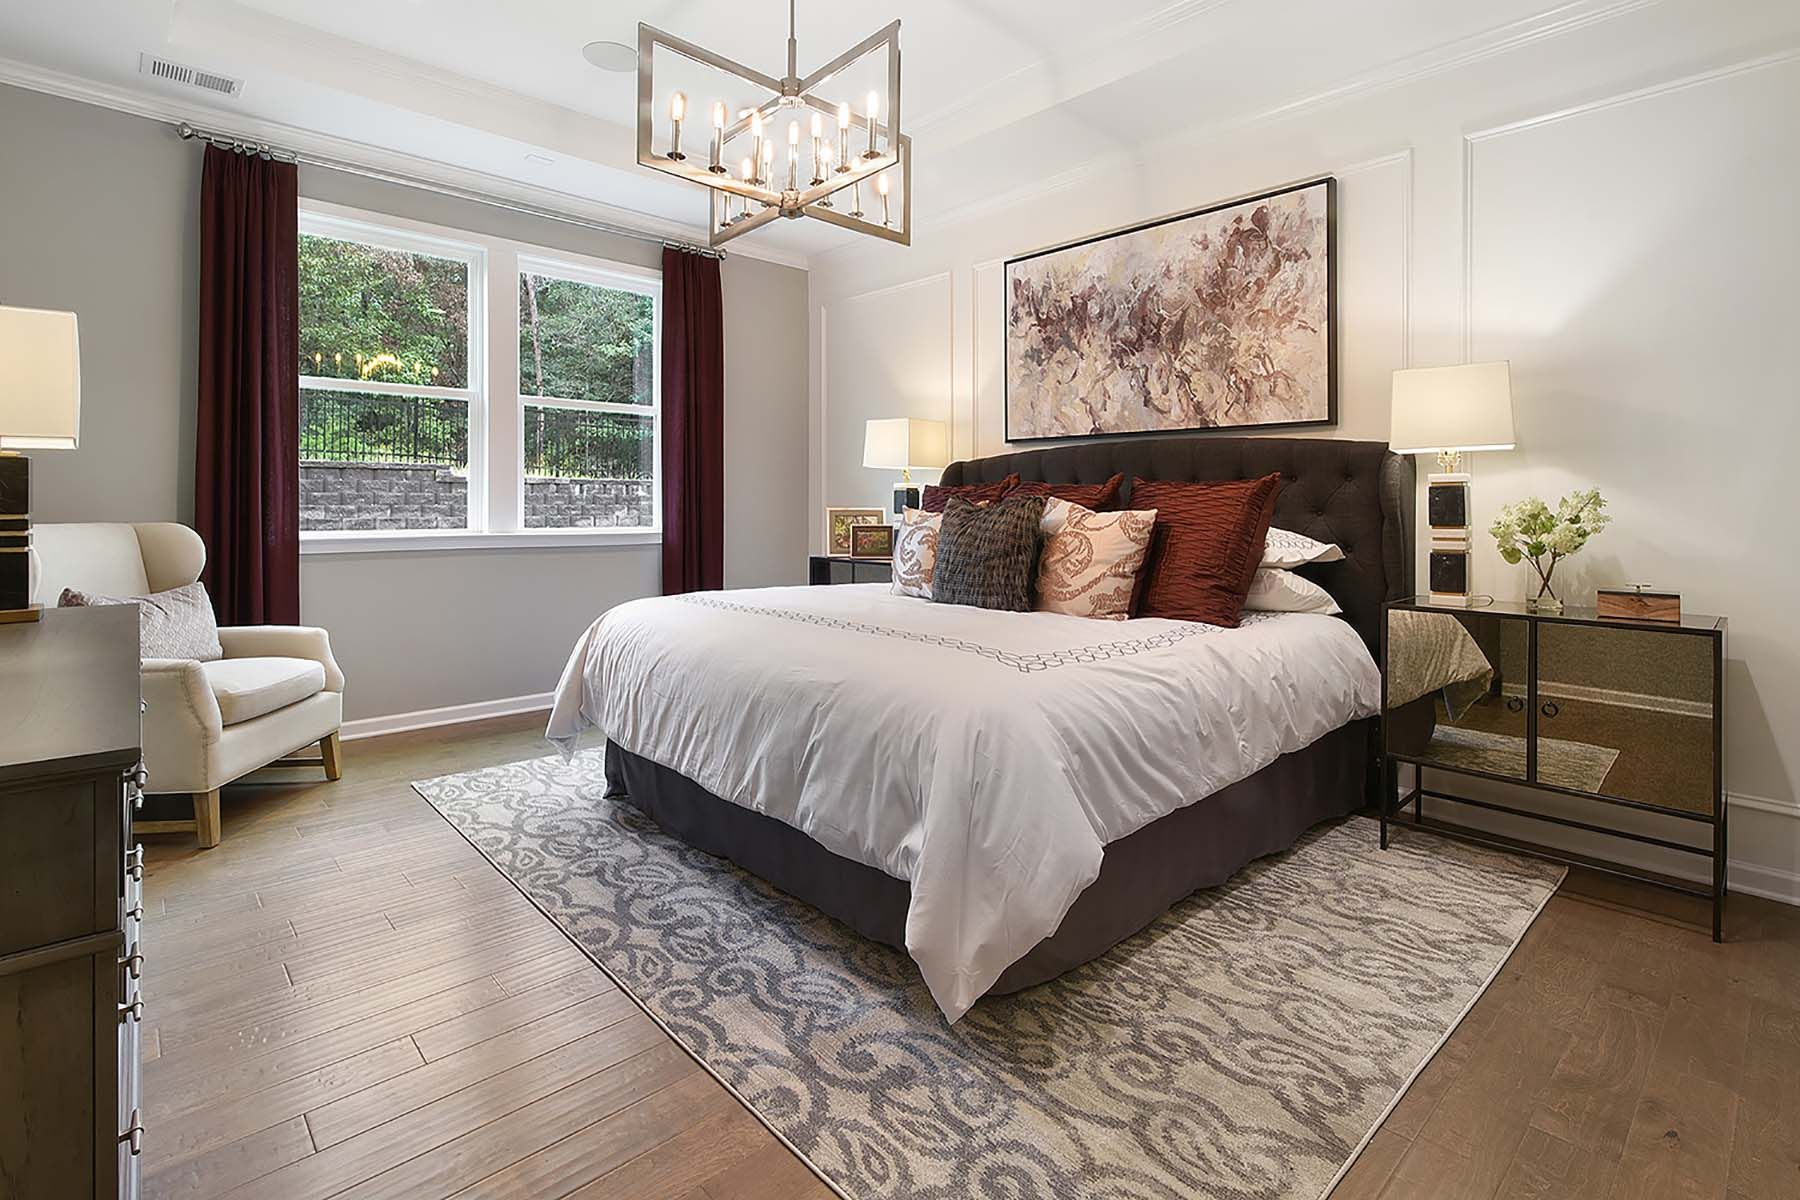 Bedroom featured in the Evelyn By Mattamy Homes in Charlotte, NC